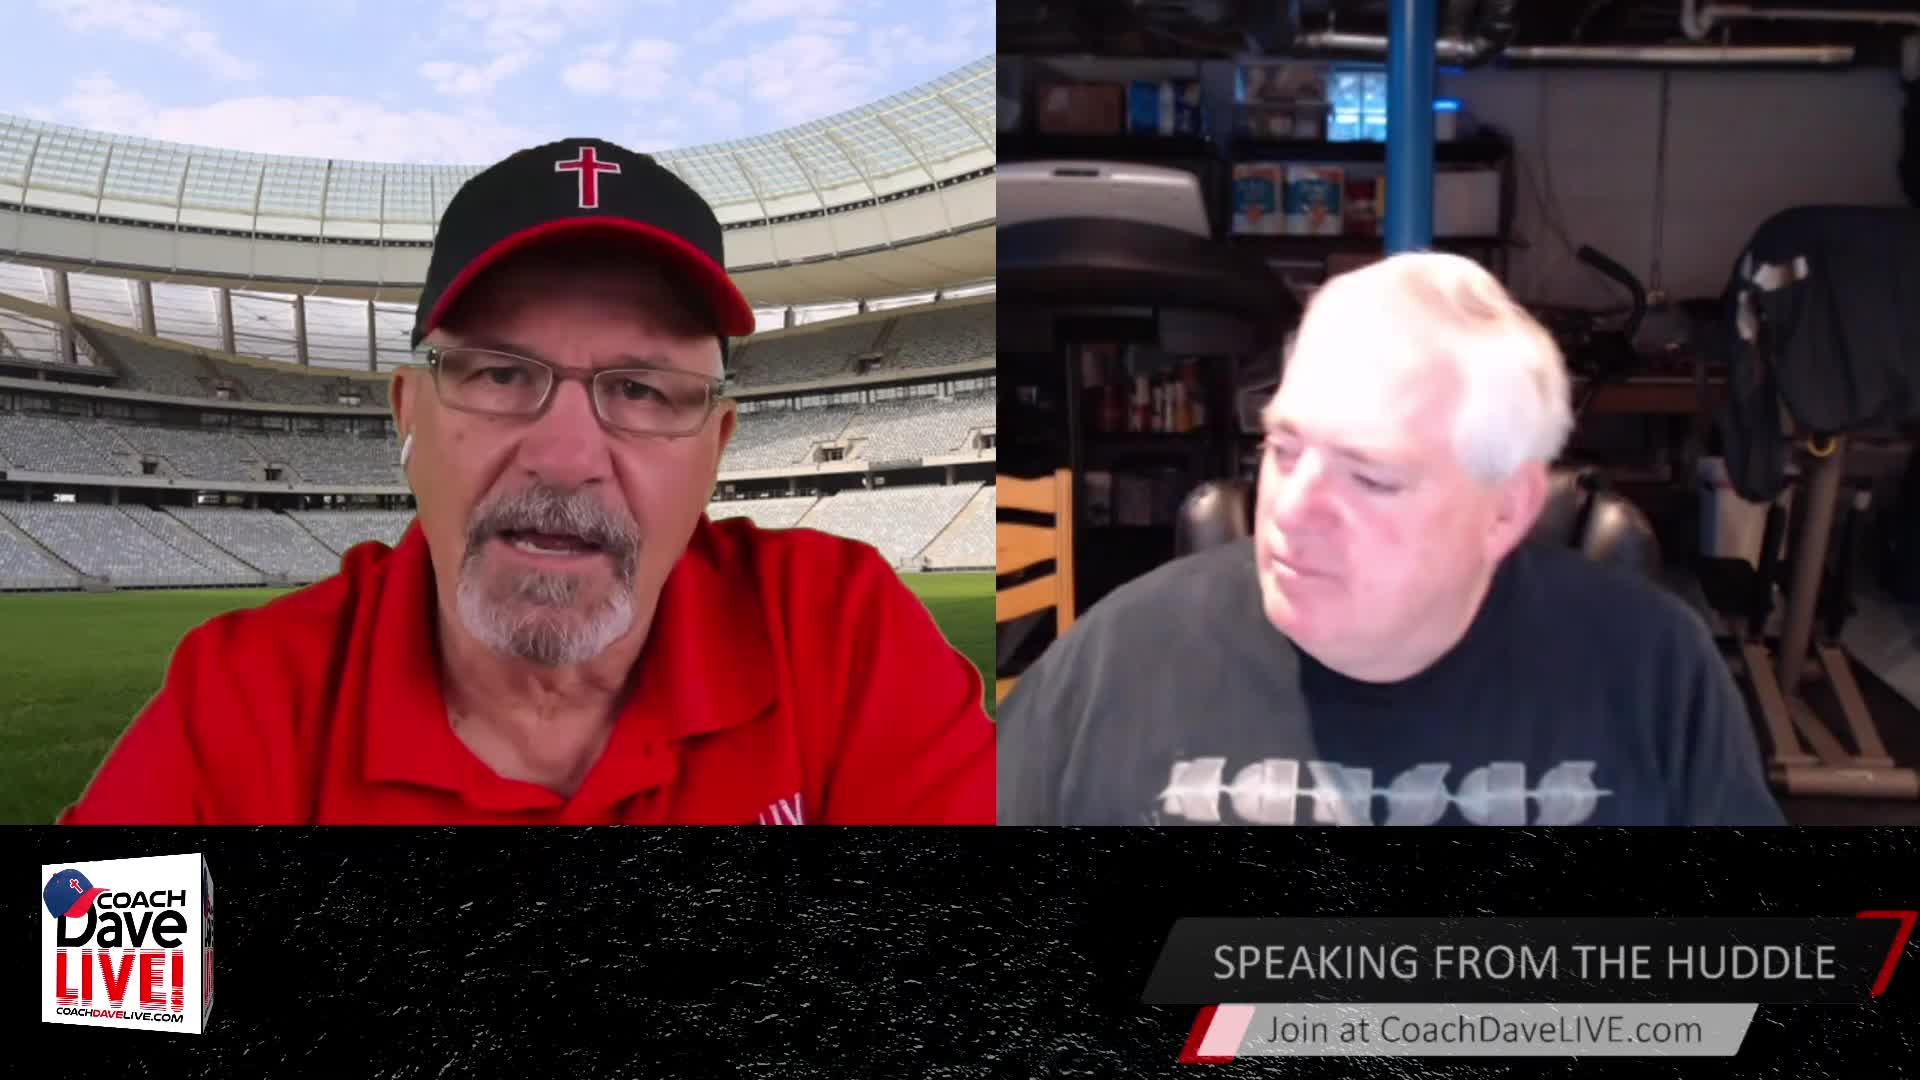 Coach Dave LIVE | 4-21-2021 | SOMETHING'S COMING! - AUDIO ONLY